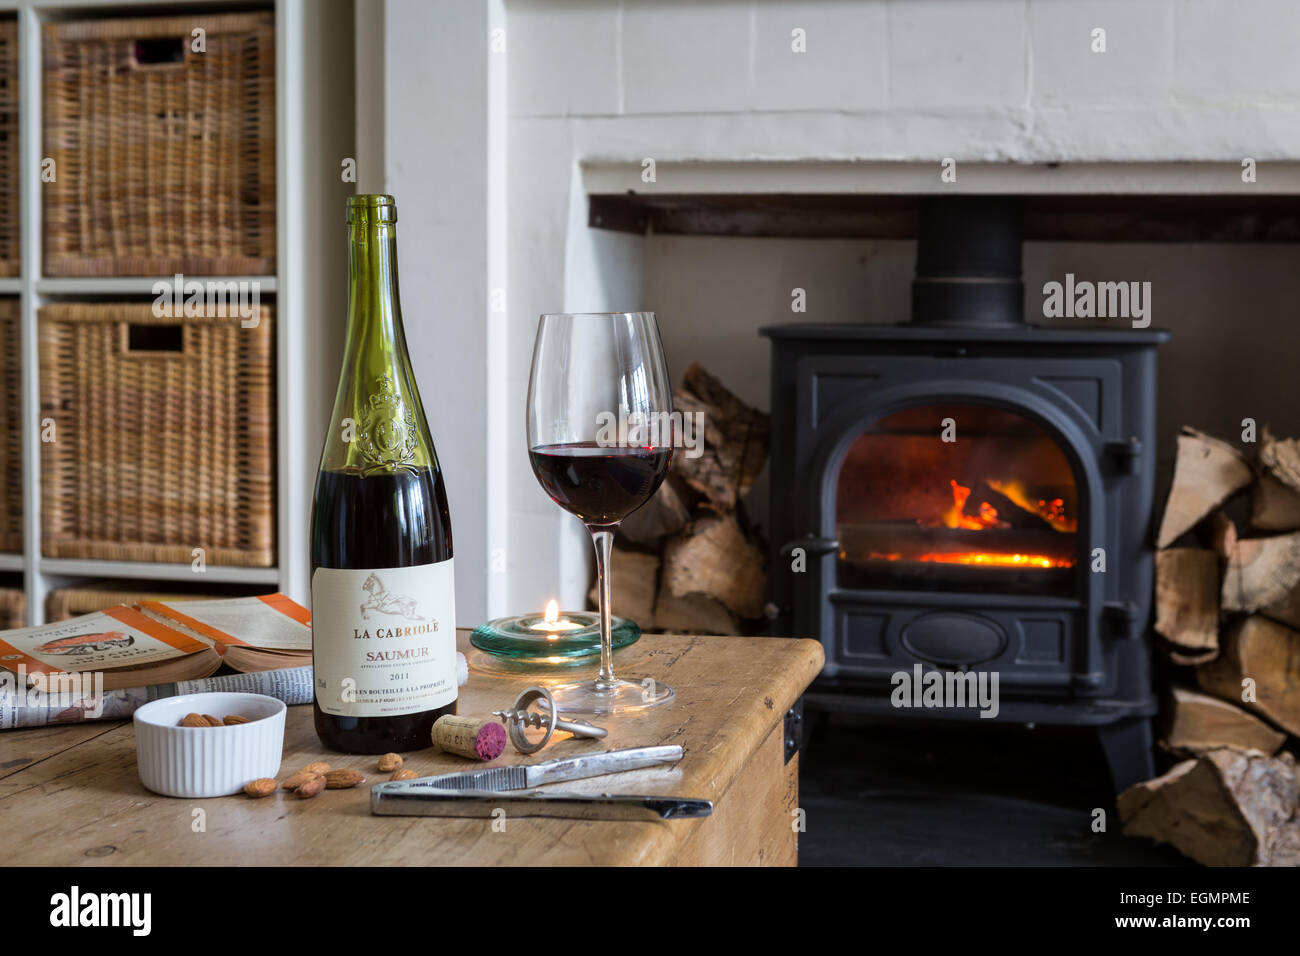 Red wine by the fireside - Stock Image